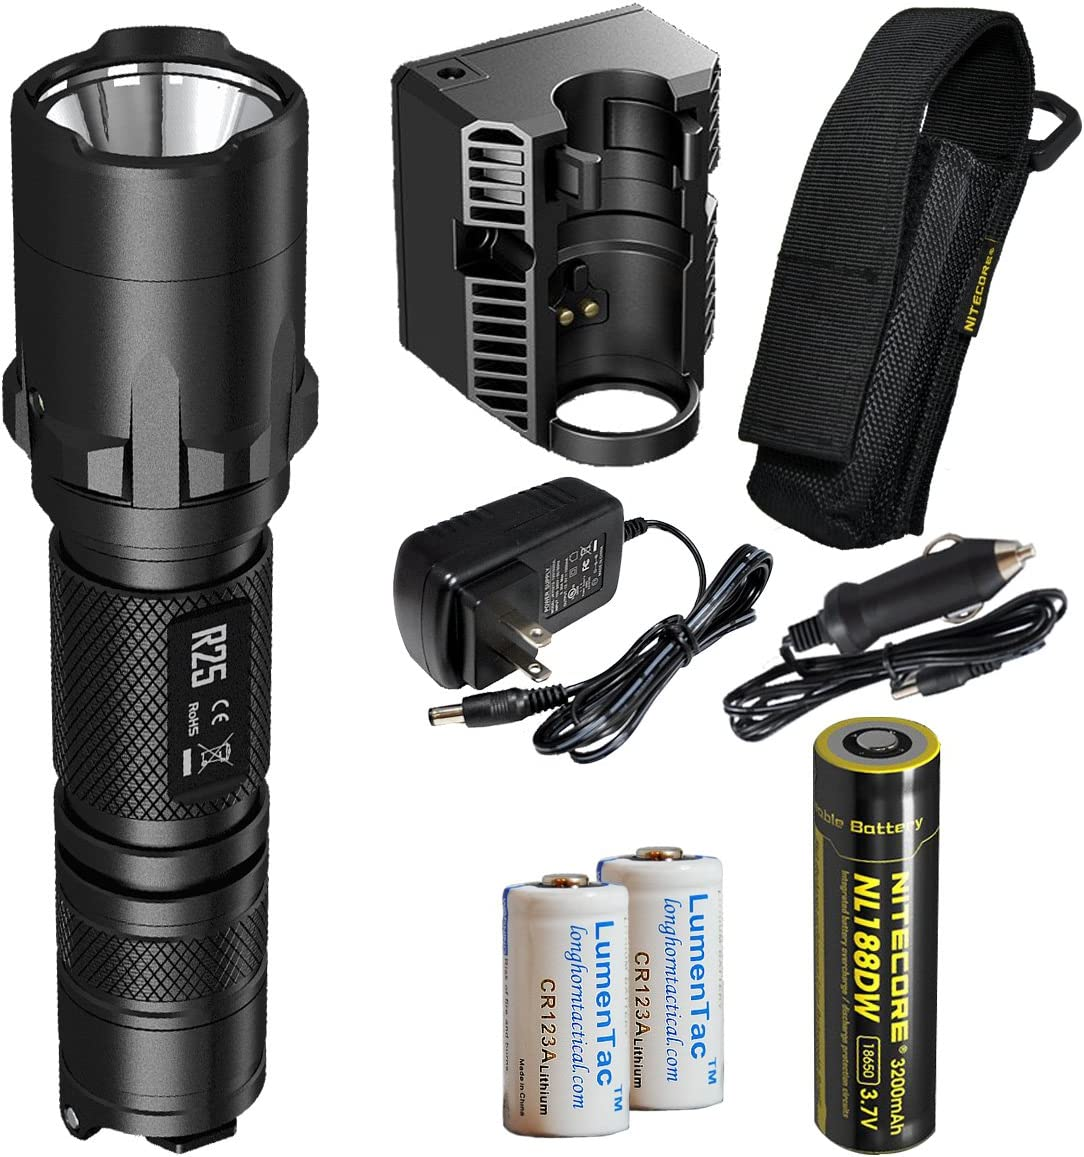 Nitecore R25 800 Lumens Rechargeable LED Tactical Police Flashlight – Including Rechargeable Battery, Charging Dock, Adapter, Holster and 2X LumenTac CR123A